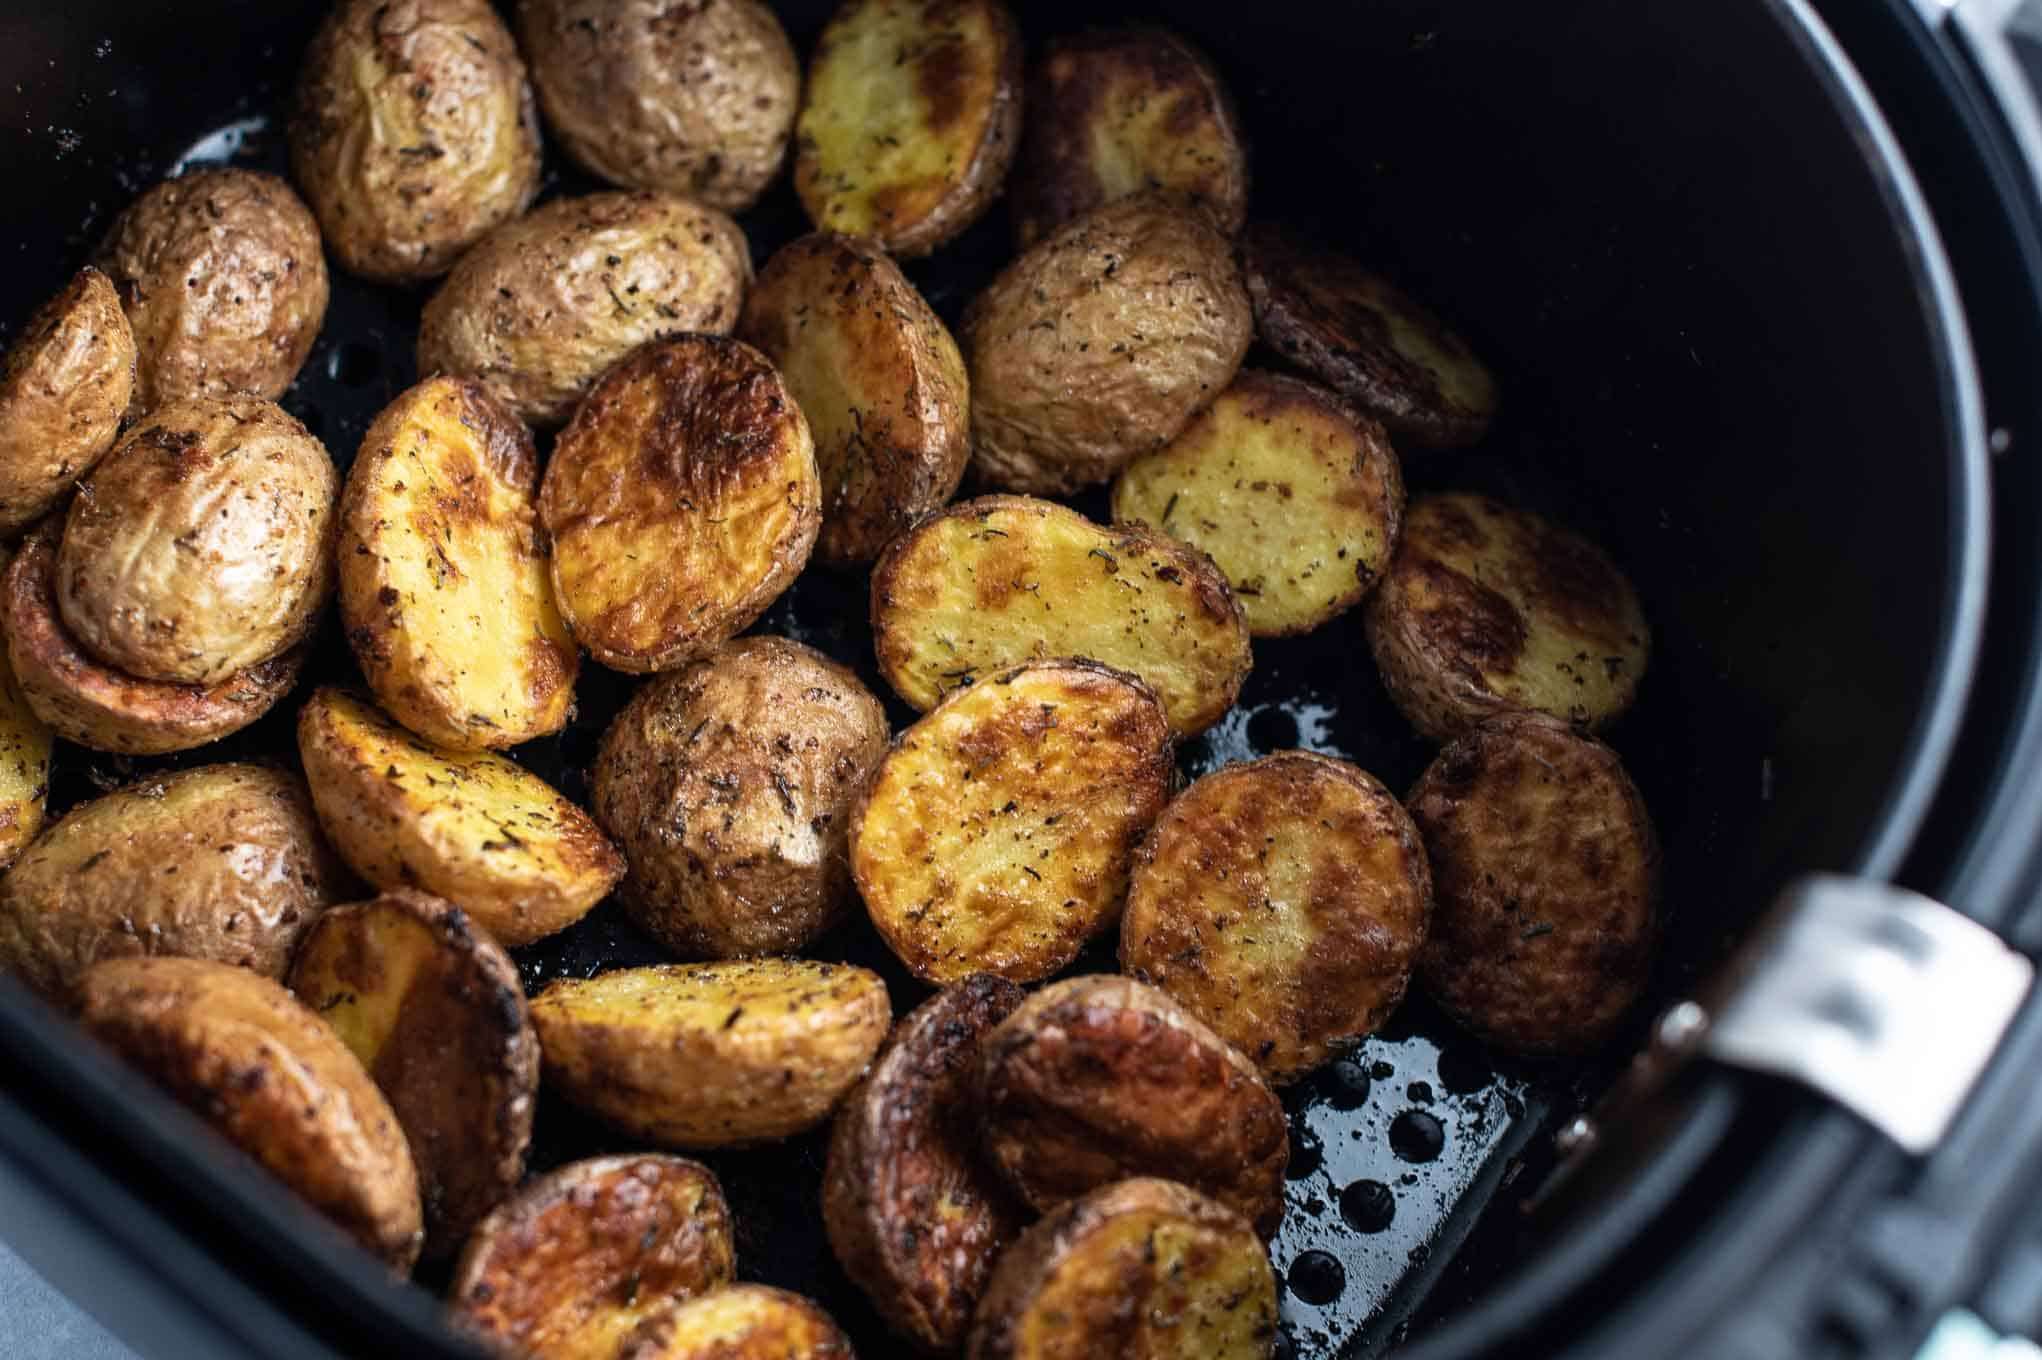 air fryer with potatoes in it